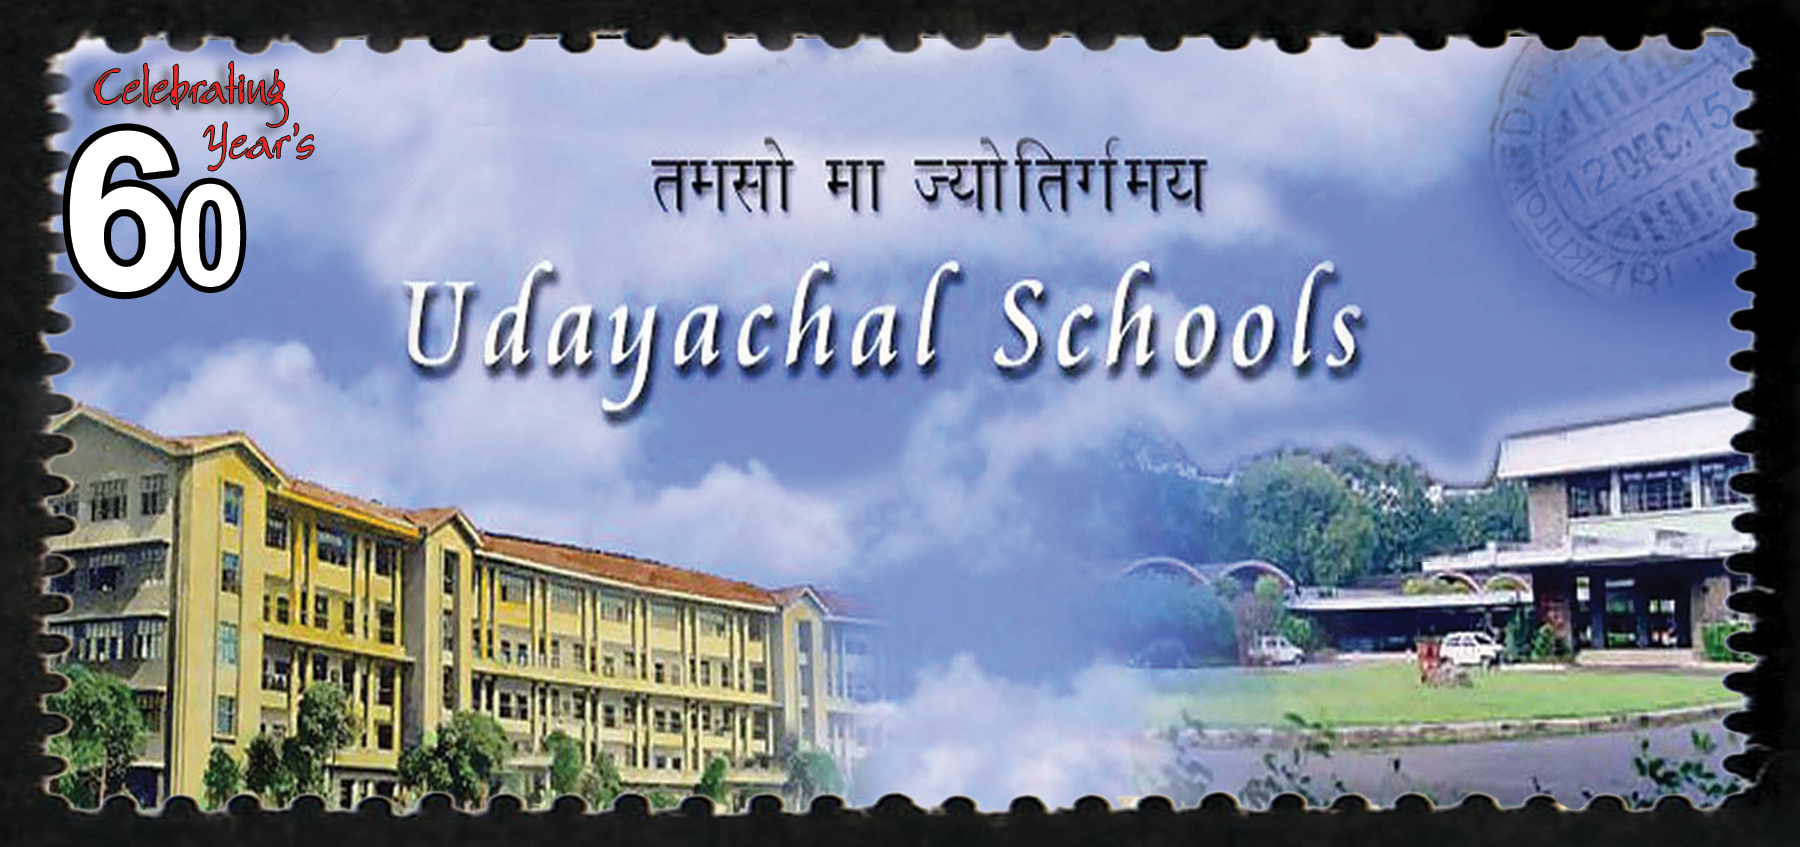 CELEBRATING 60 YEARS OF UDAYACHAL SCHOOL